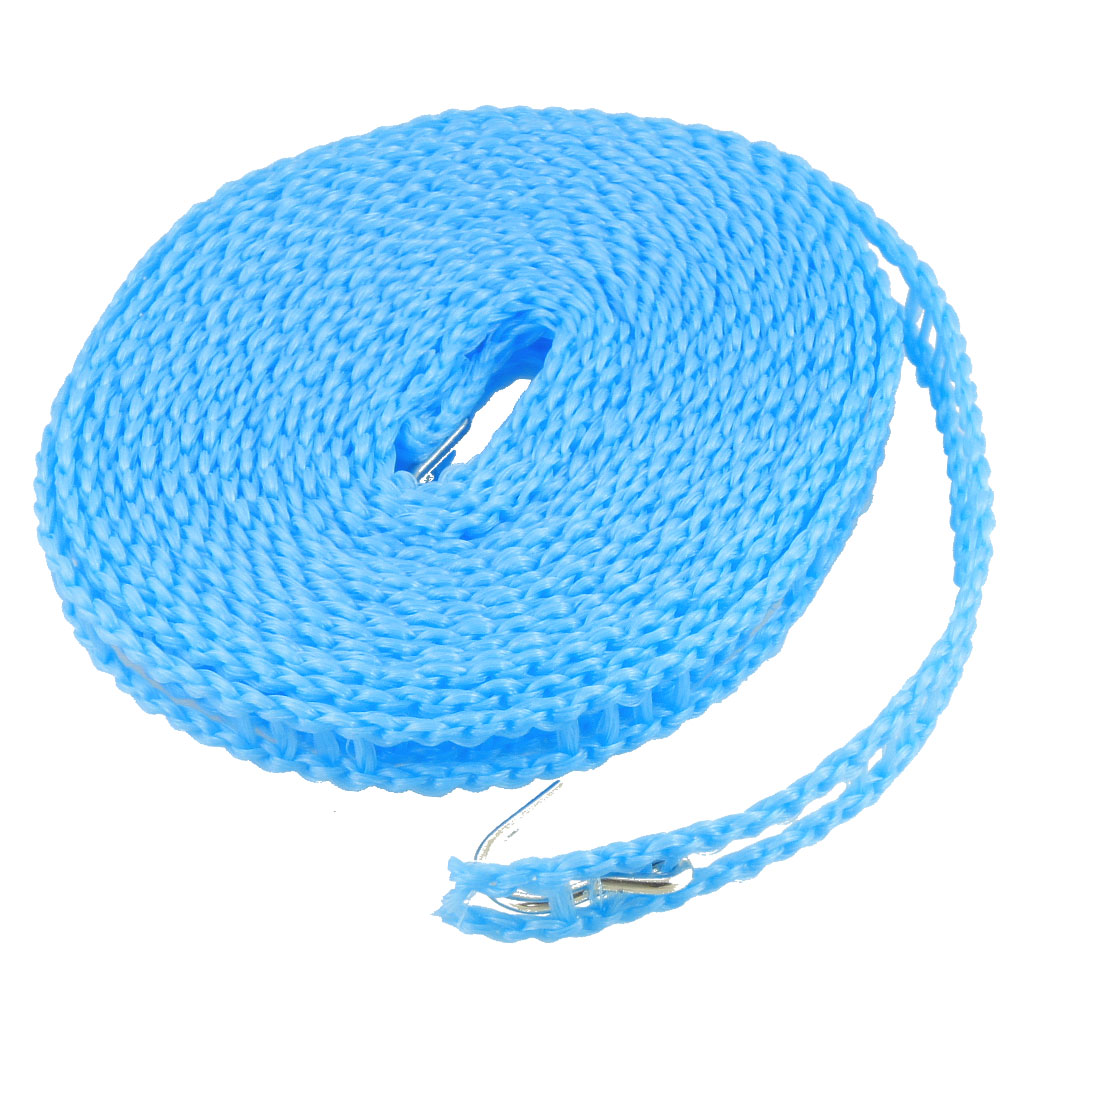 10Ft Plastic Household Windproof Nonslip Hanging Clothing Clothesline Rope w Hooks Blue